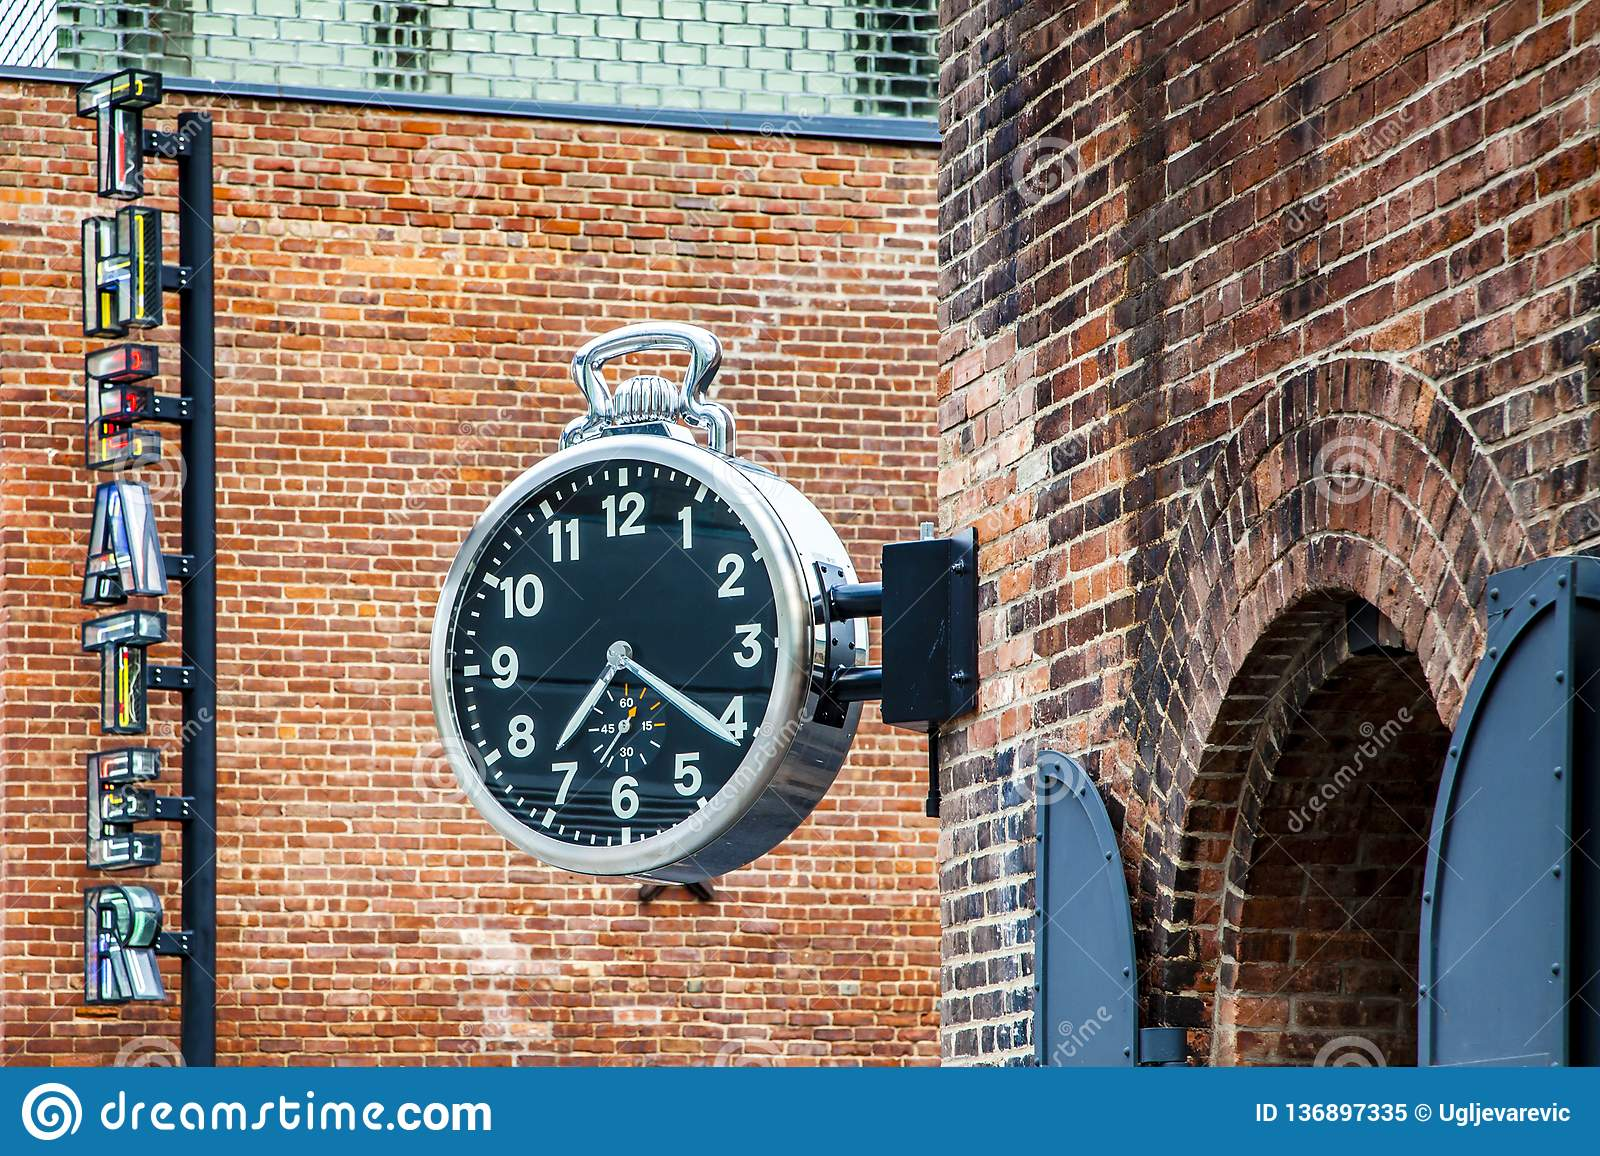 Stylish Public Analog Clock Hanging On Brick Wall Showing Time In